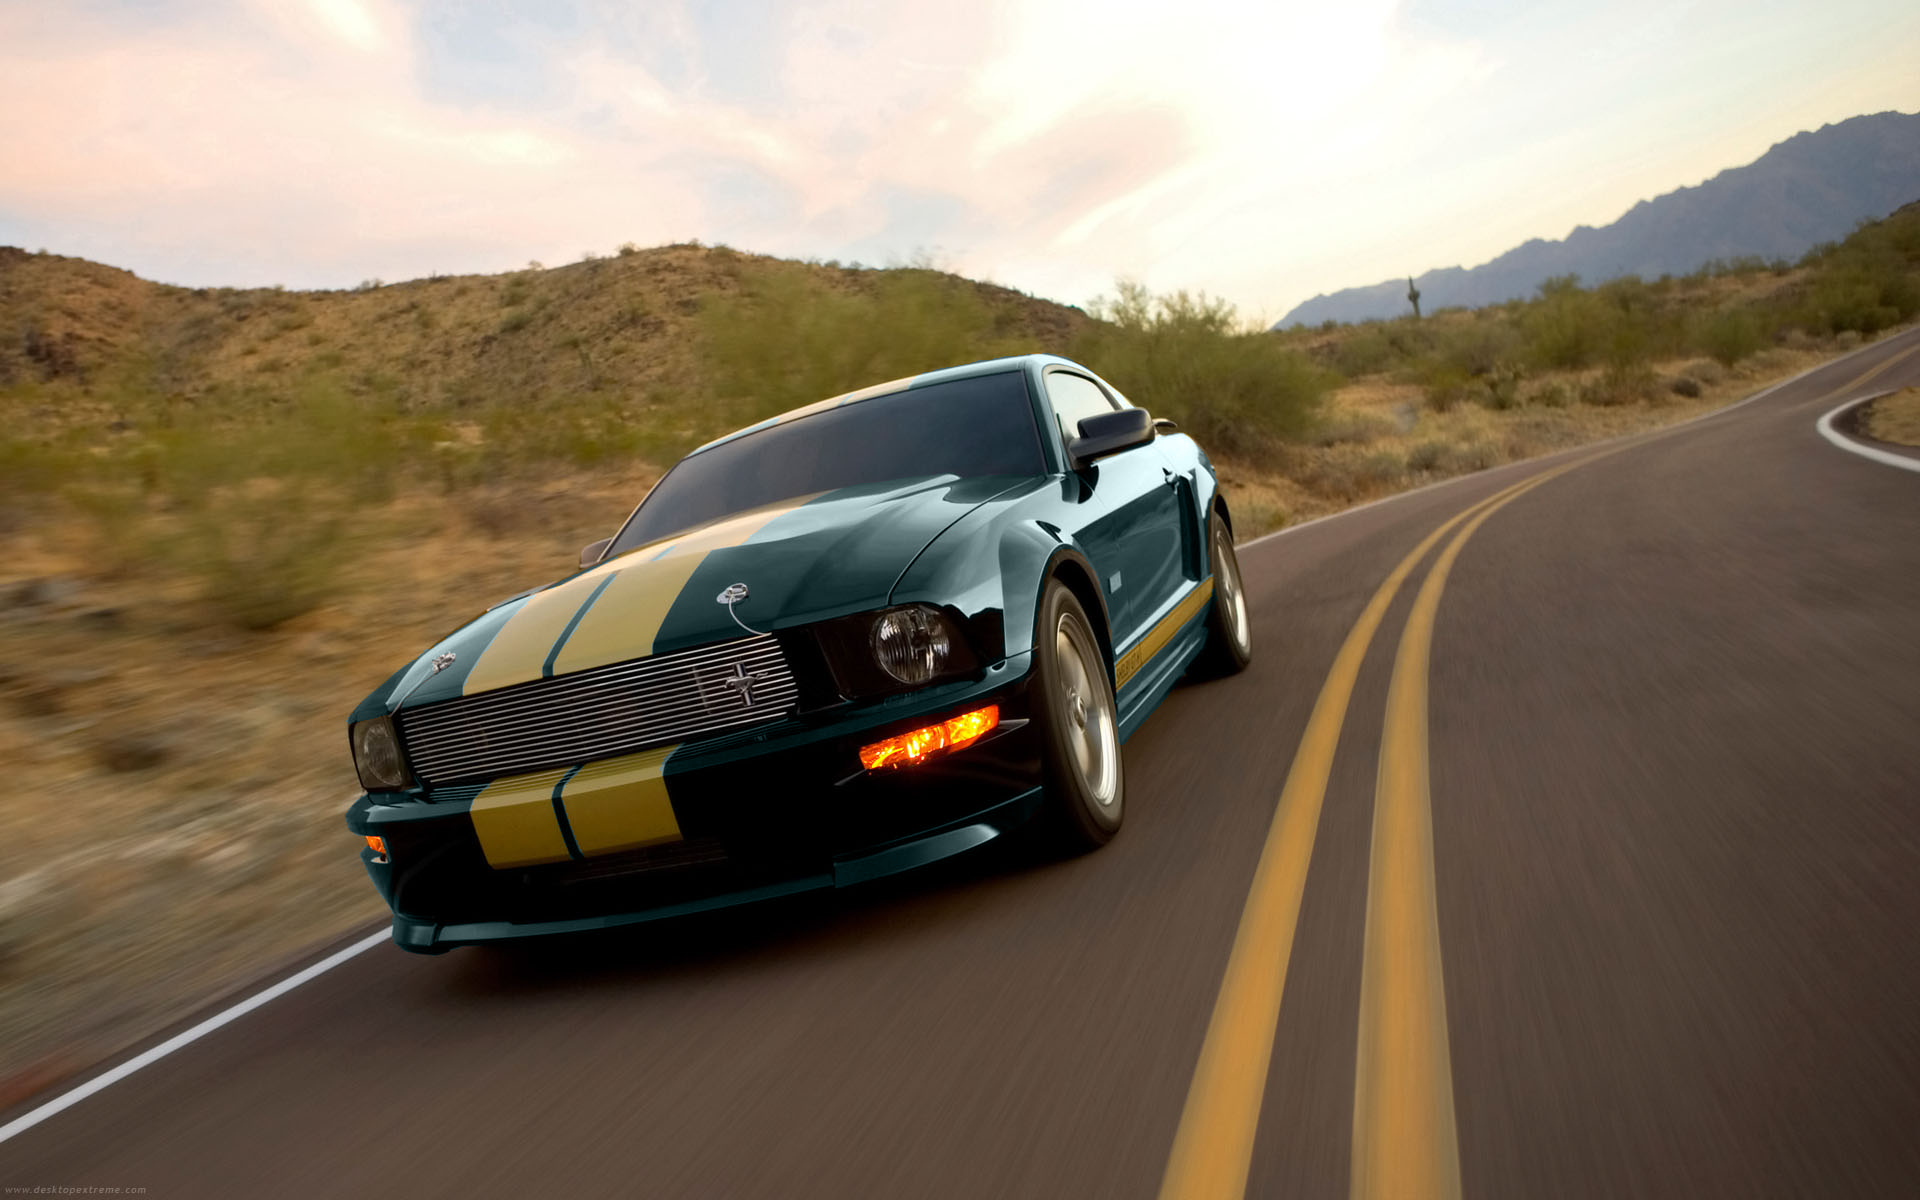 Ford Mustang by Think-Creative